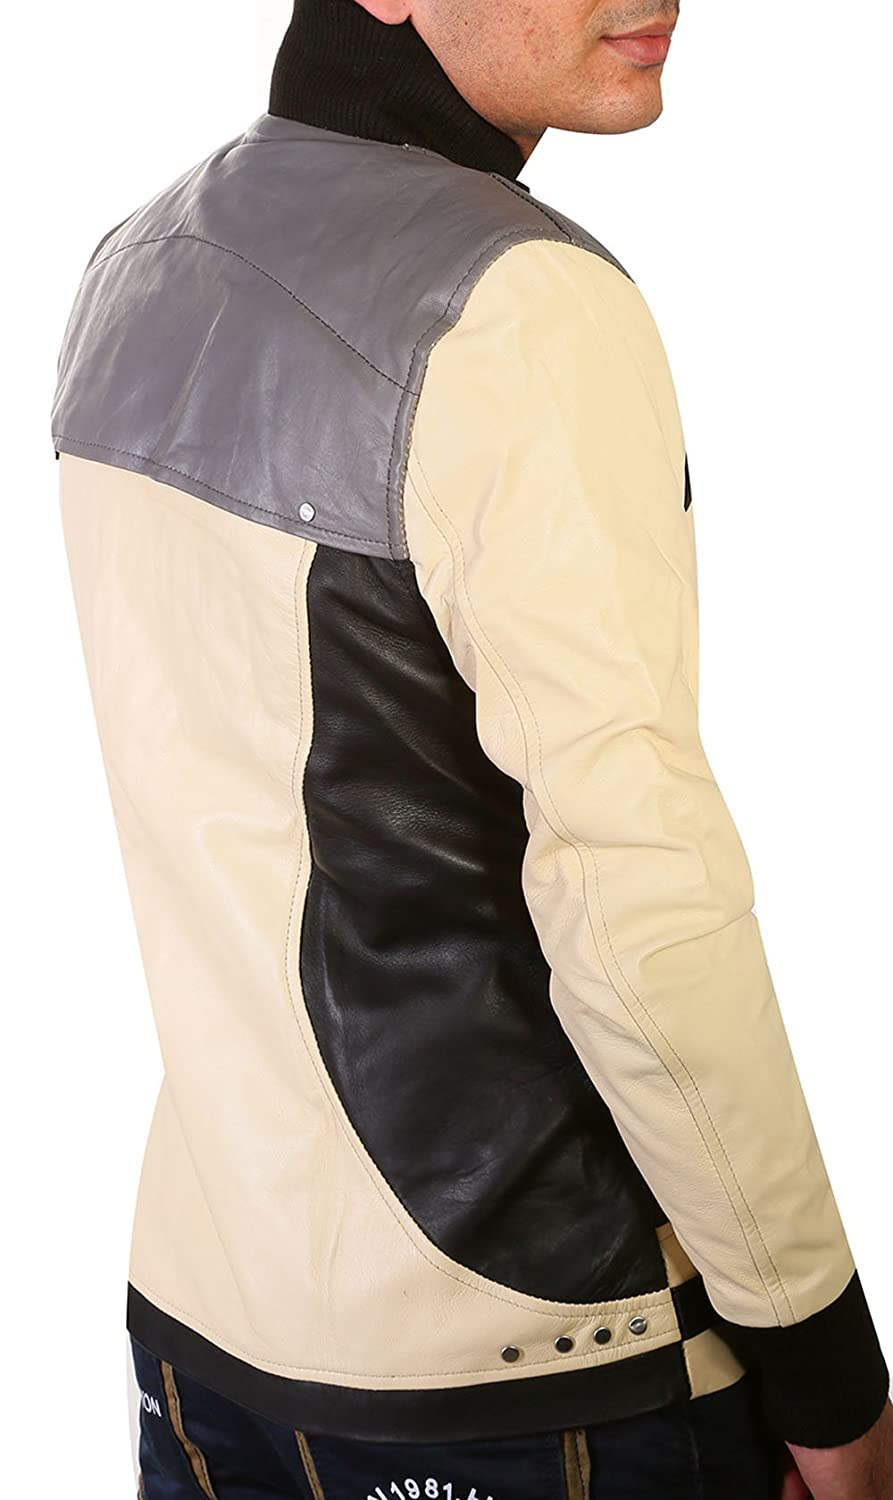 Ferris Bueller's Day Off Men's Leather Jacket